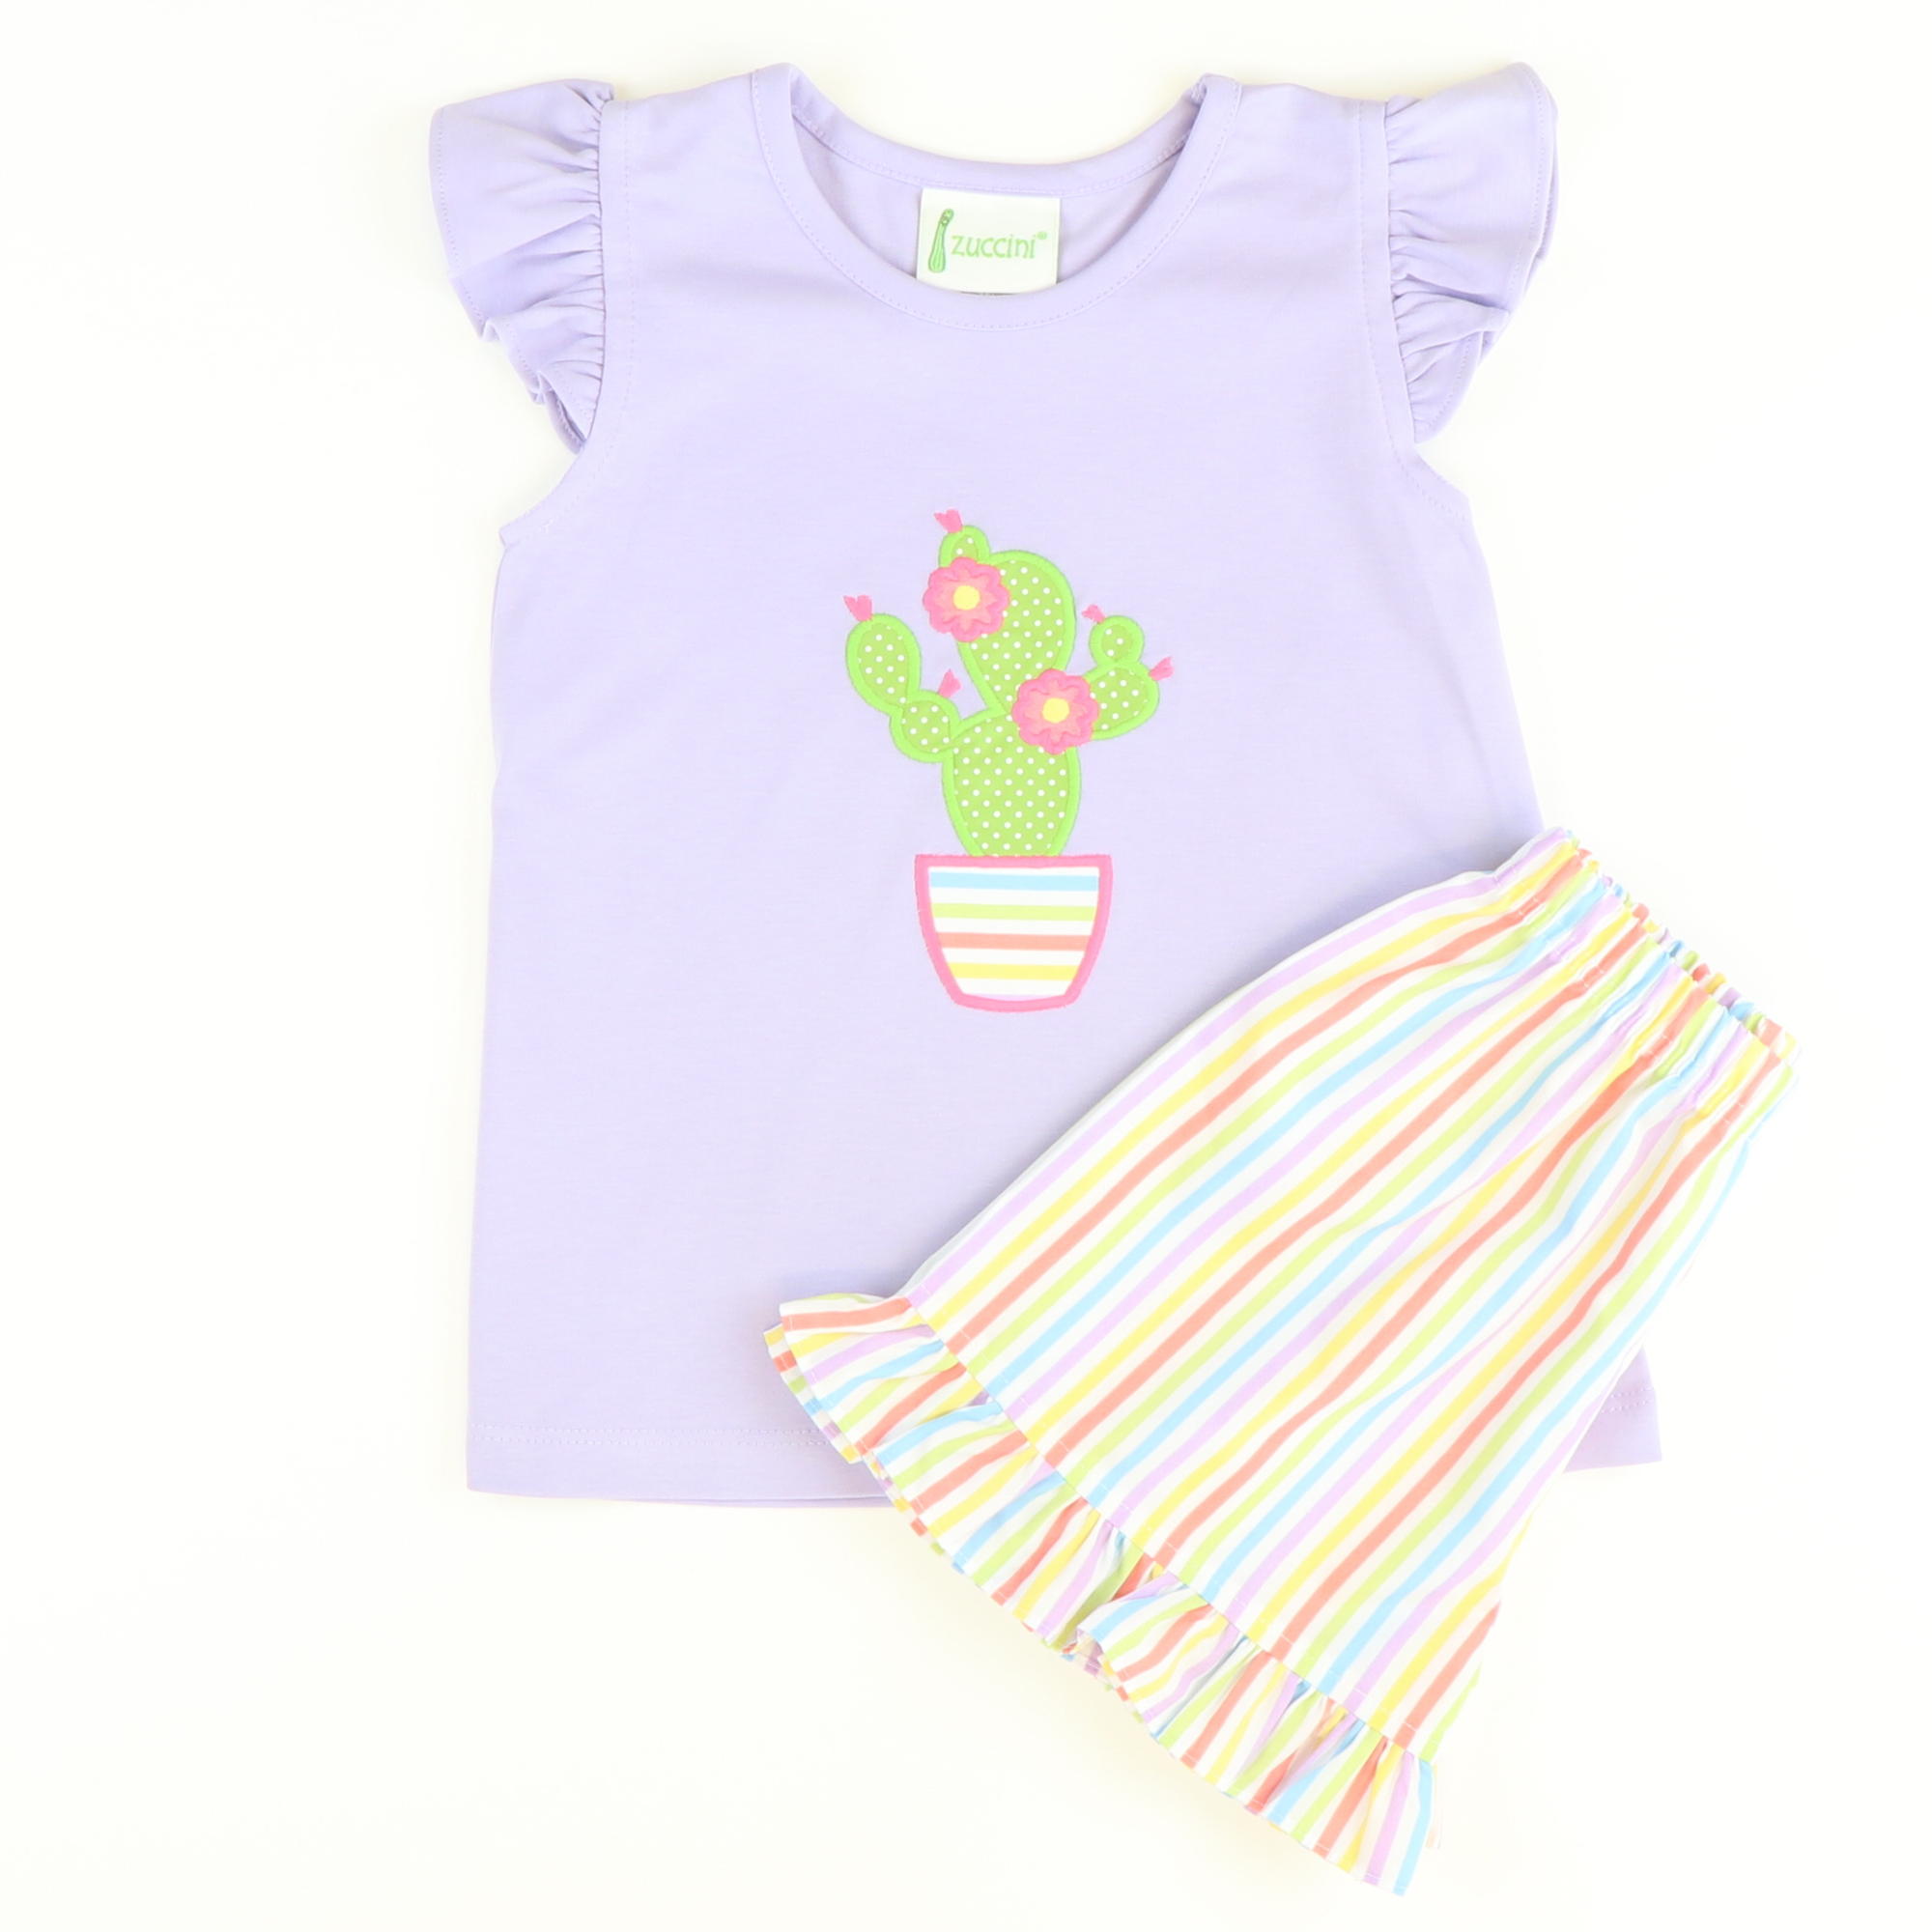 Cactus Appliqué Ruffle Top & Short Set